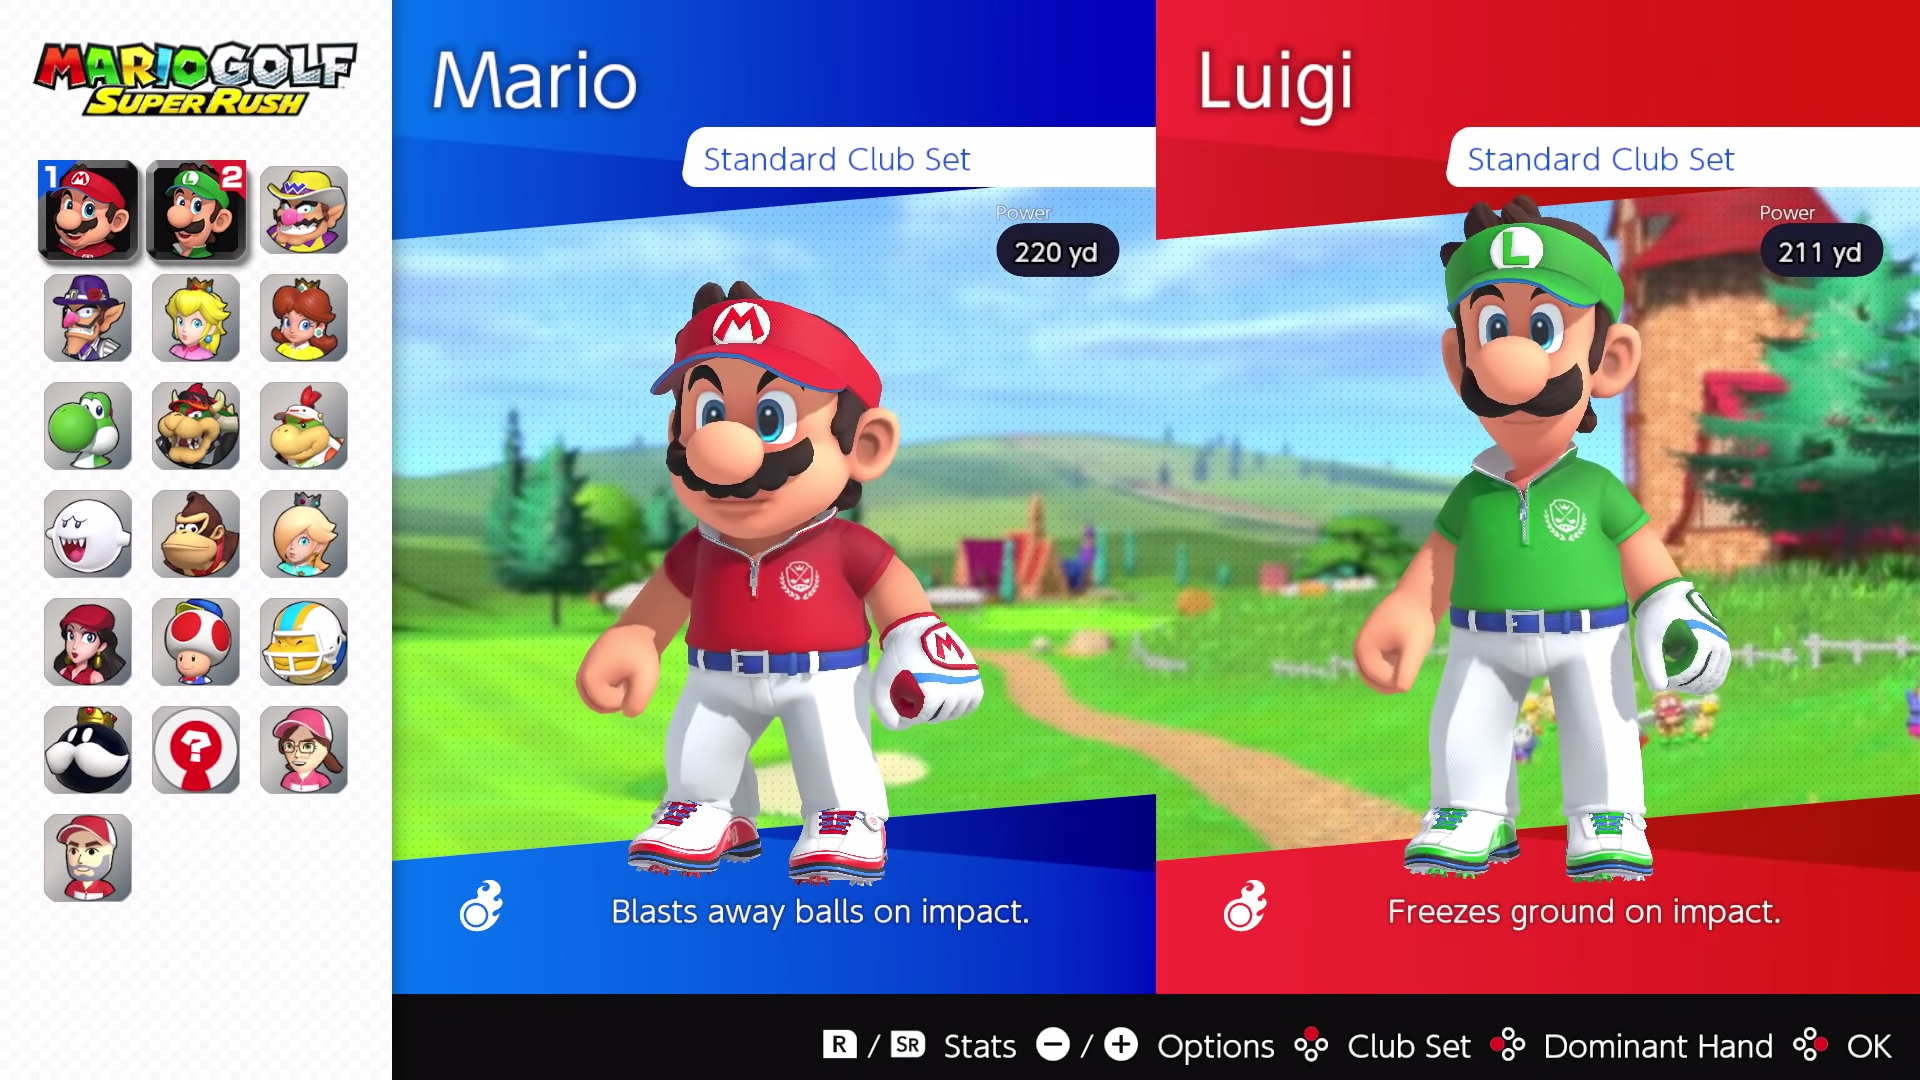 A look at the character selection screen from Mario Golf: Super Rush.